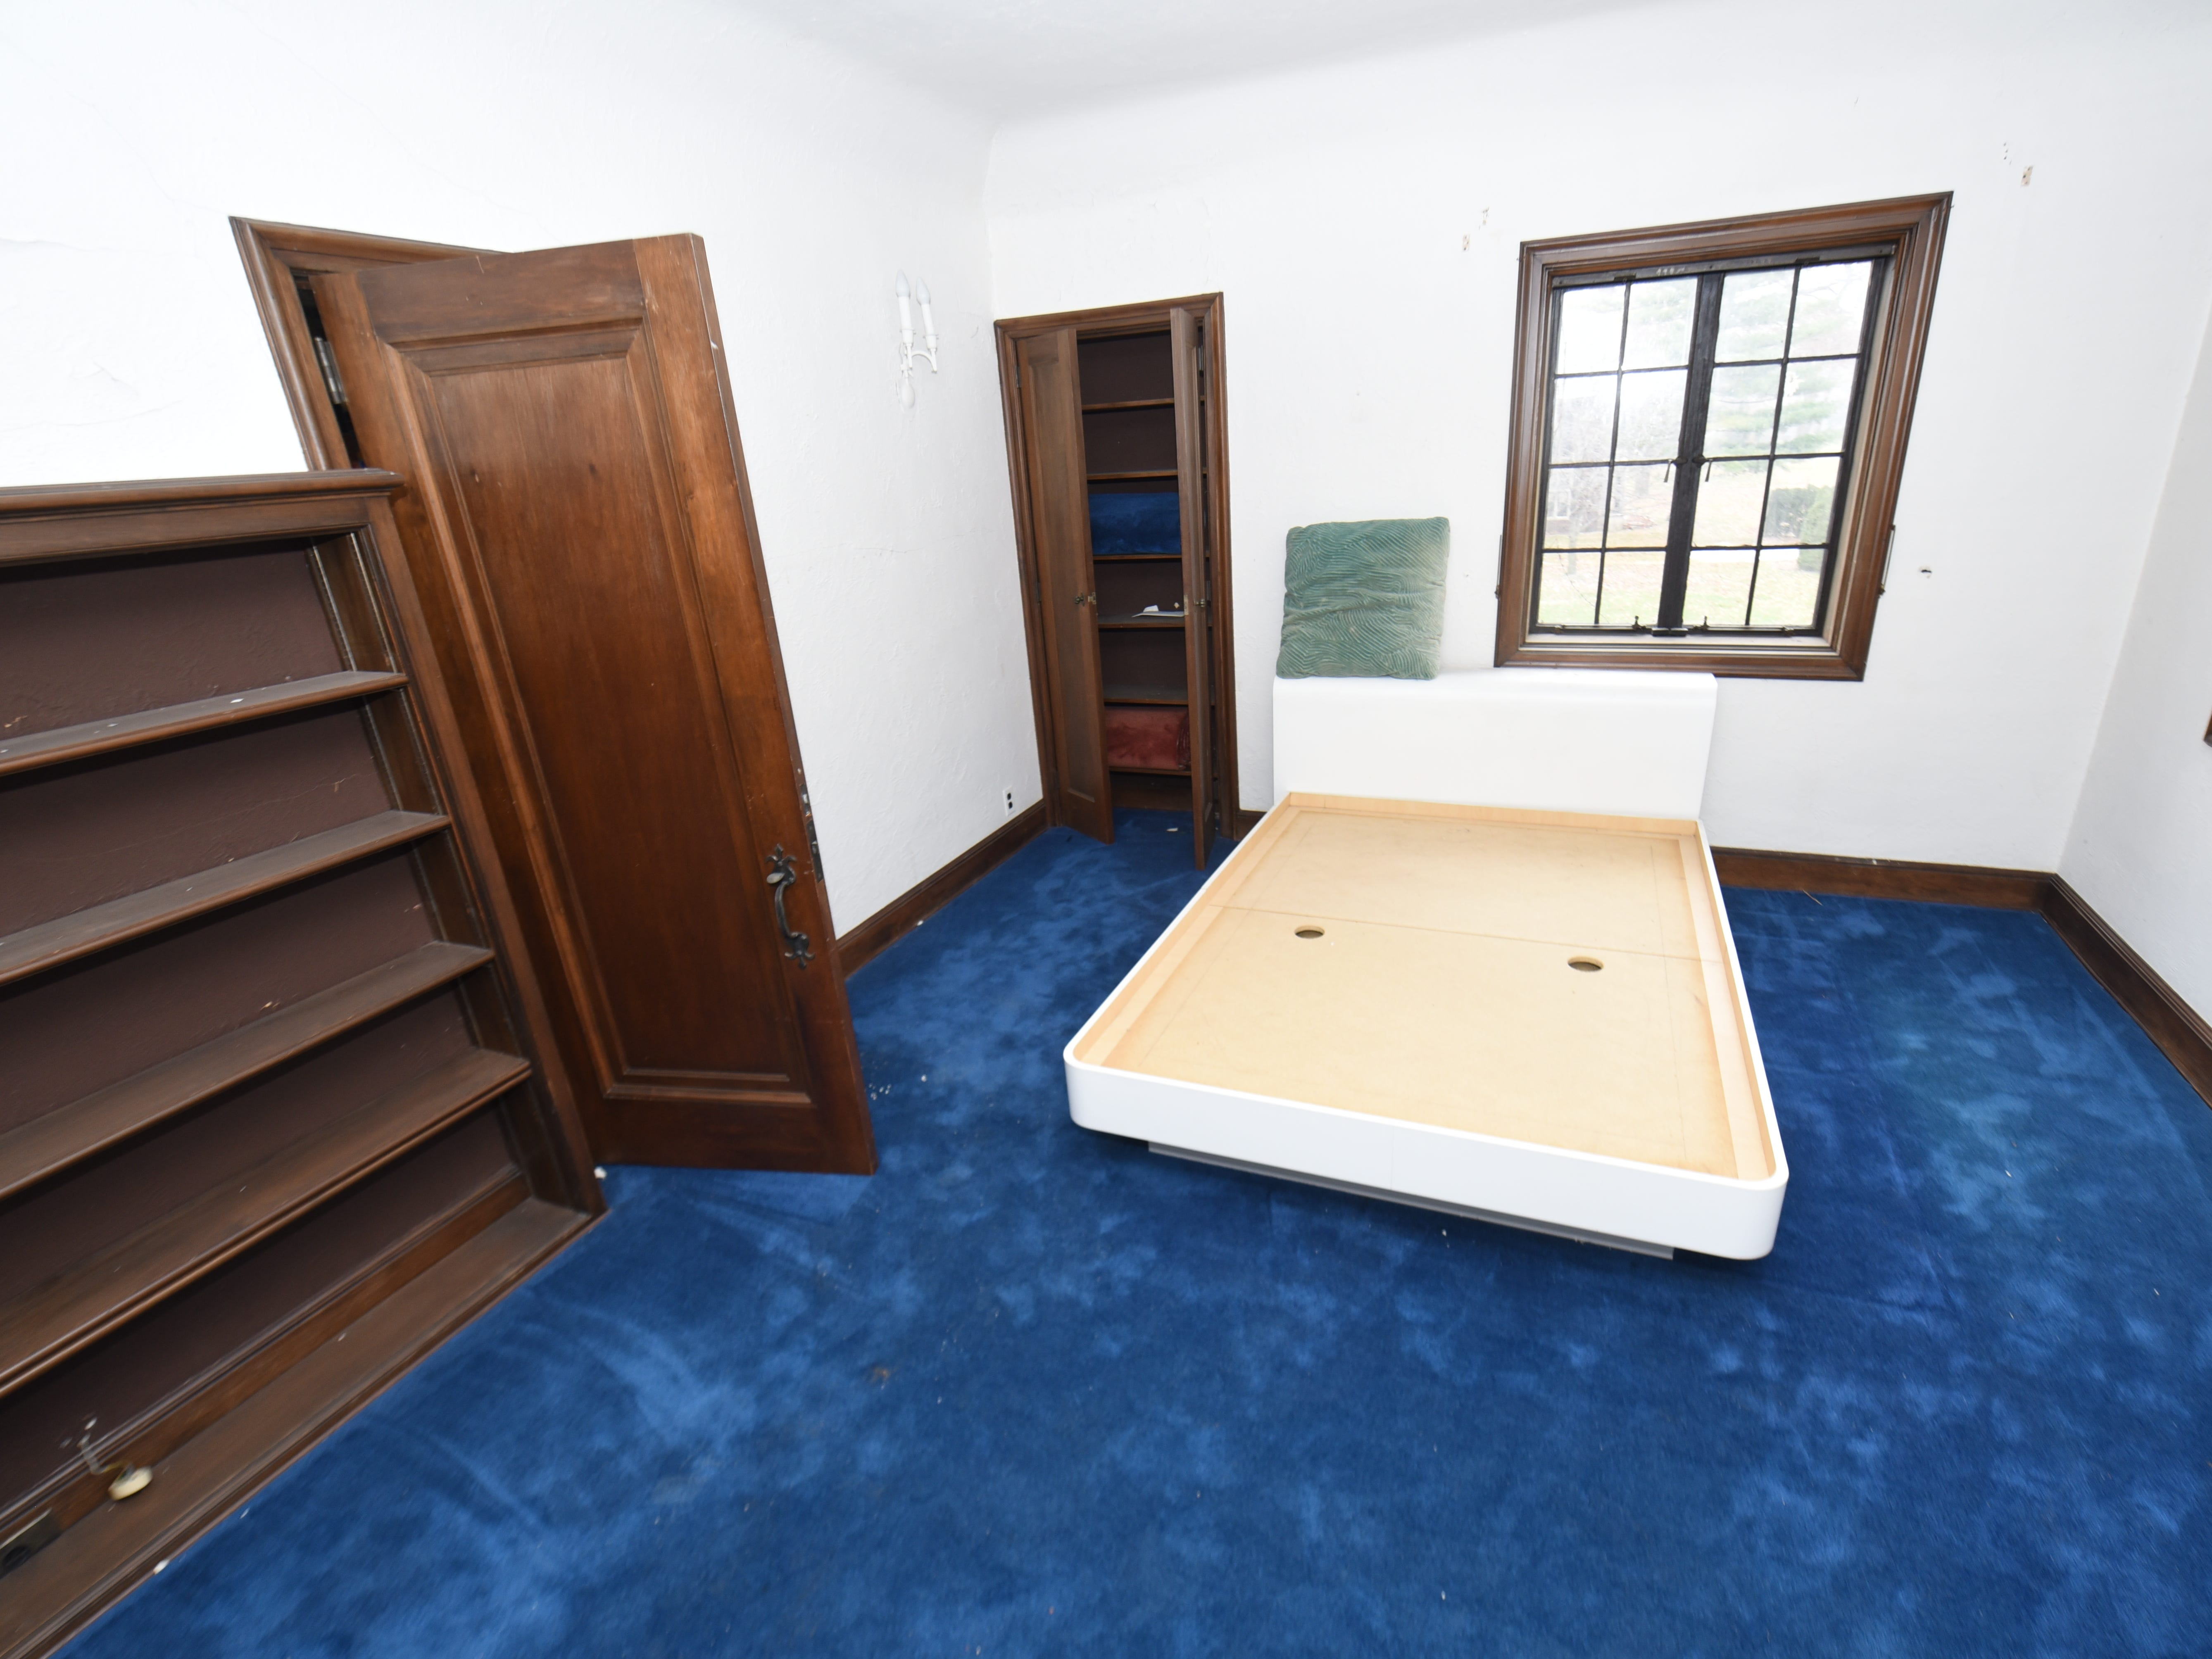 One of the bedrooms has blue carpeting and a bookcase.